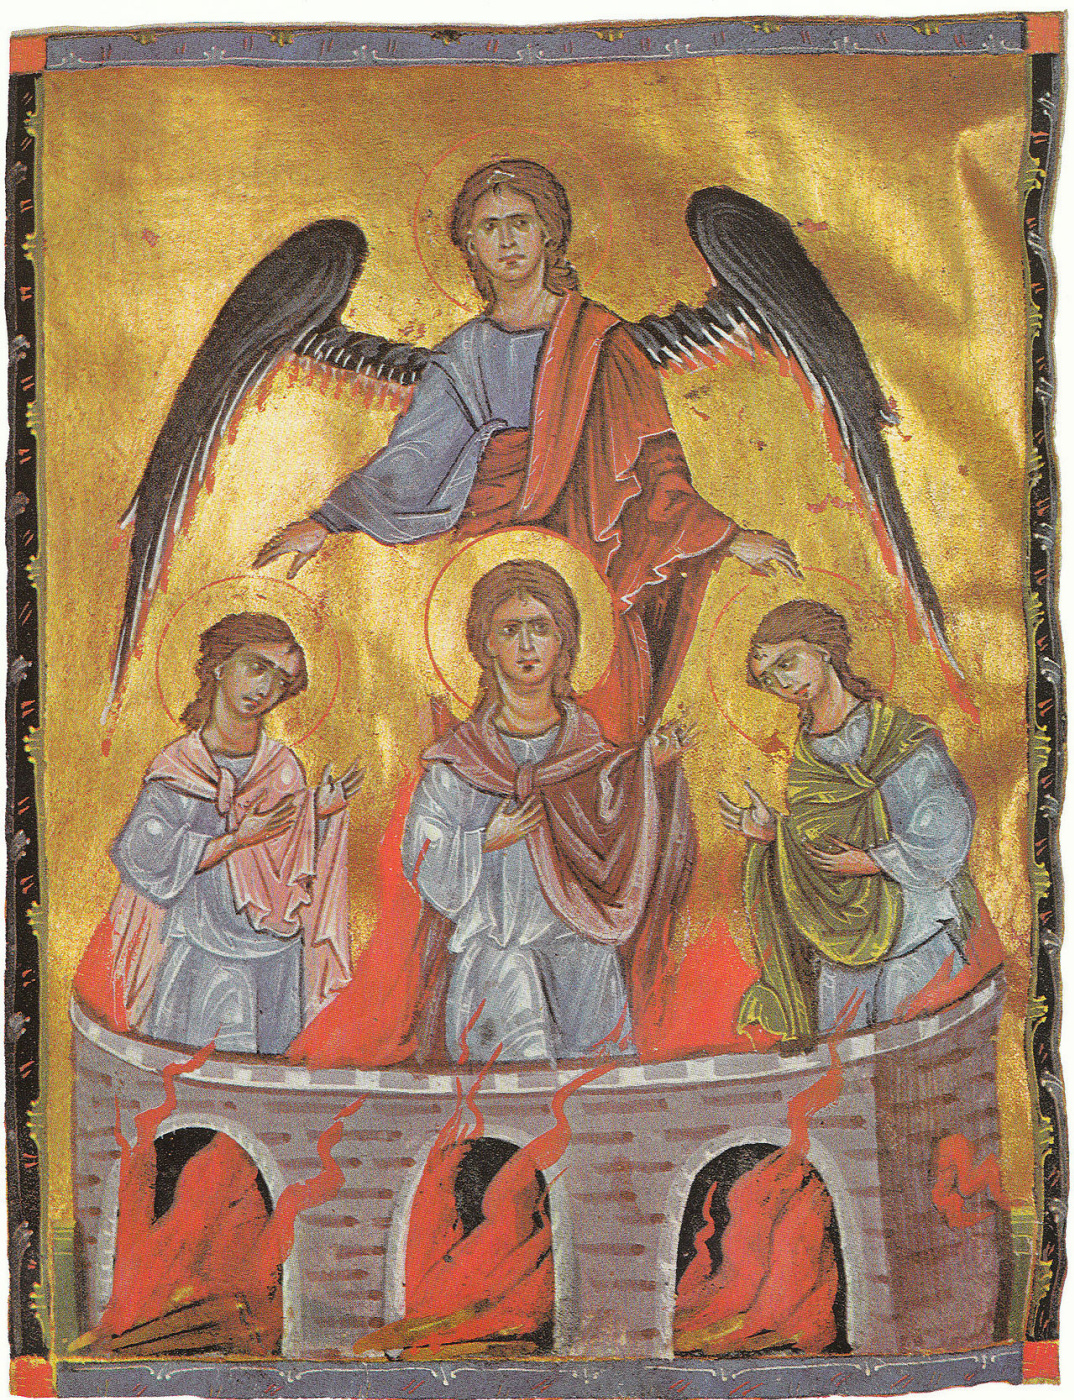 Toros Roslin. Archangel Michael and three youths in the fiery cave